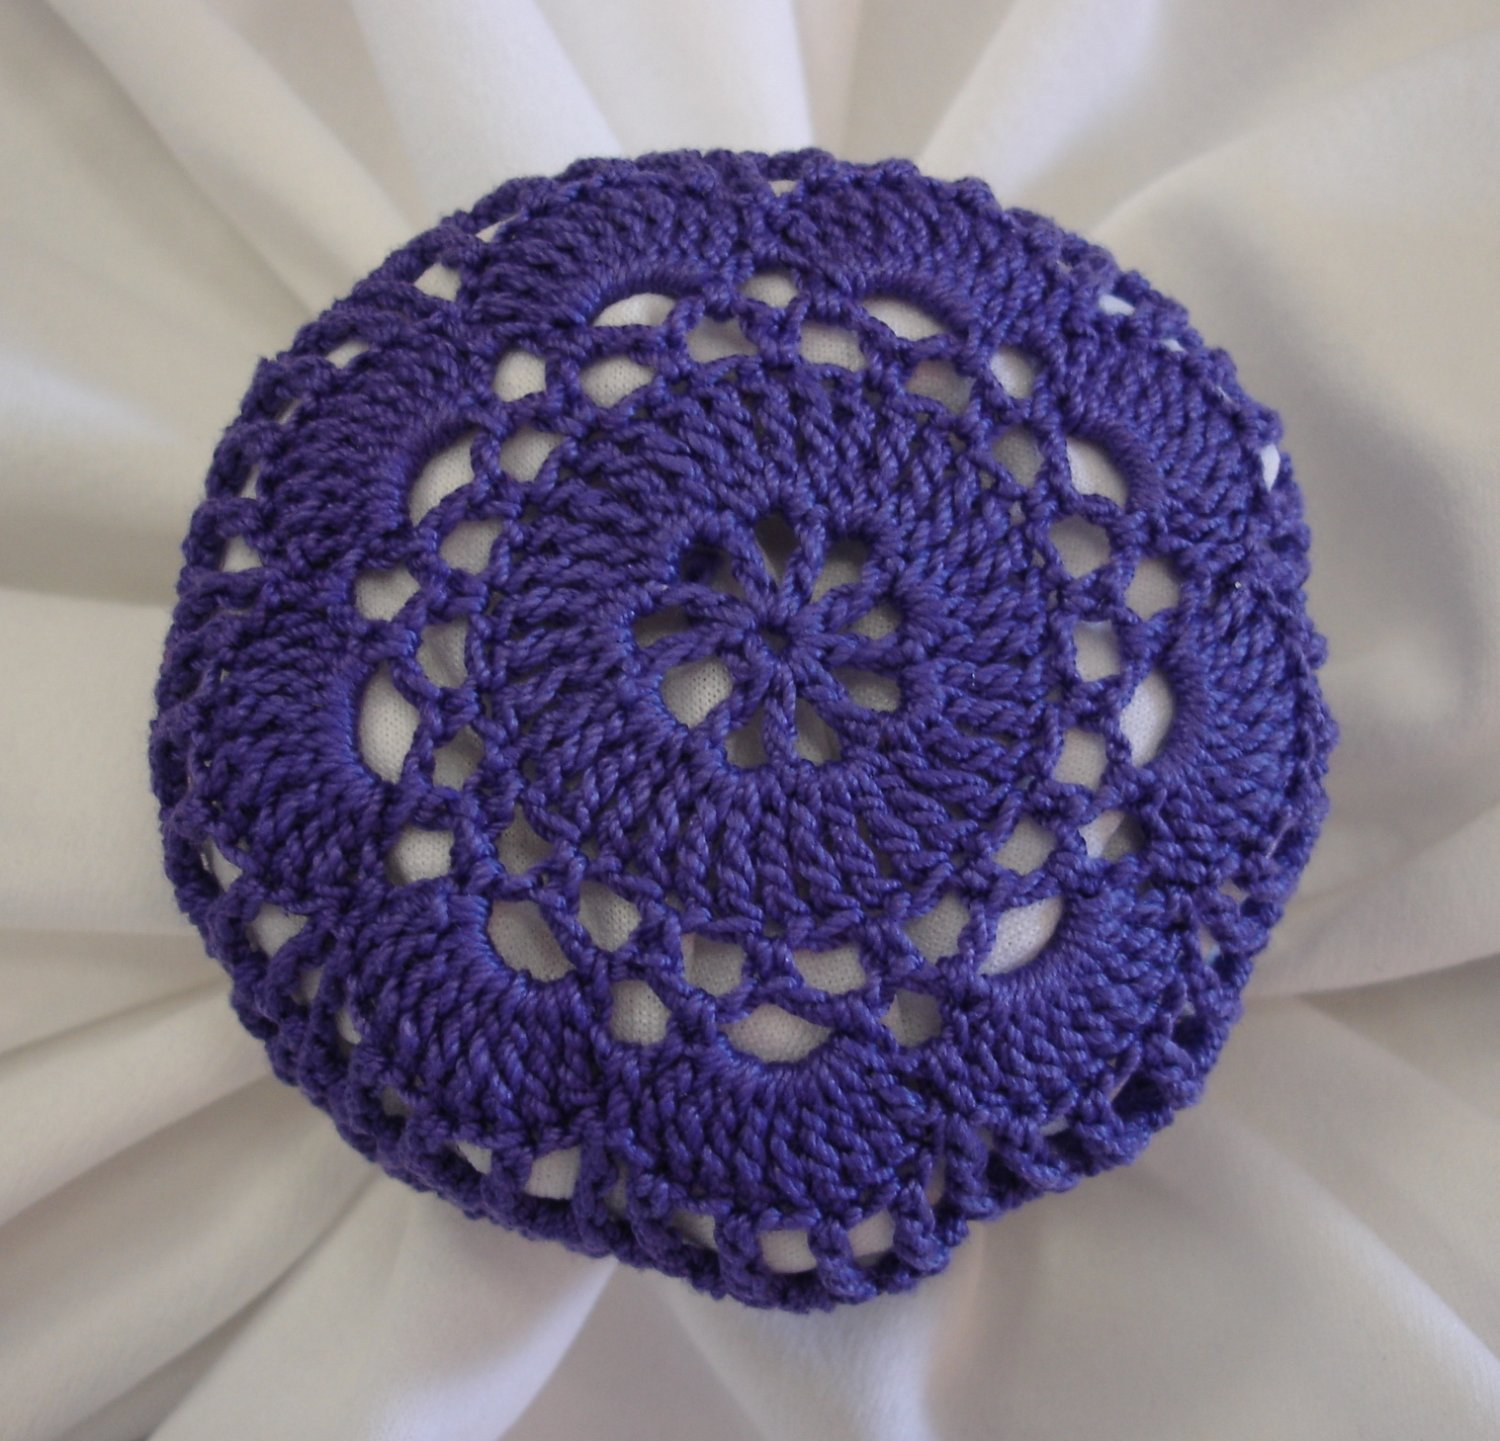 Crochet Hair Cover : Hand Crocheted Purple Hair Net / Bun Cover Flower Style Amish ...